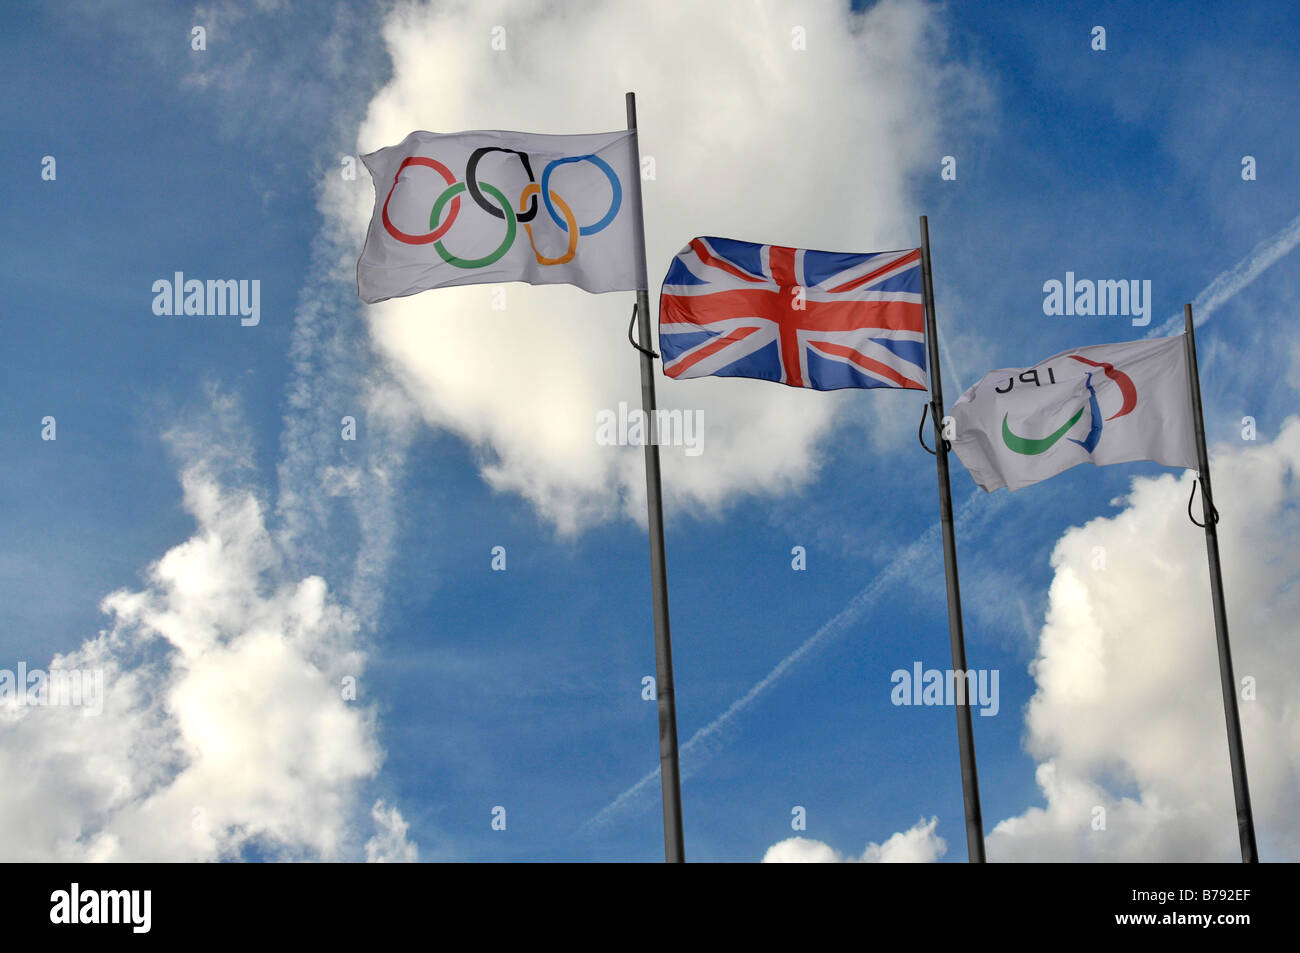 The Olympic flag takes its place beside the Union Jack in front of the Tower Bridge outside London City Hall. - Stock Image